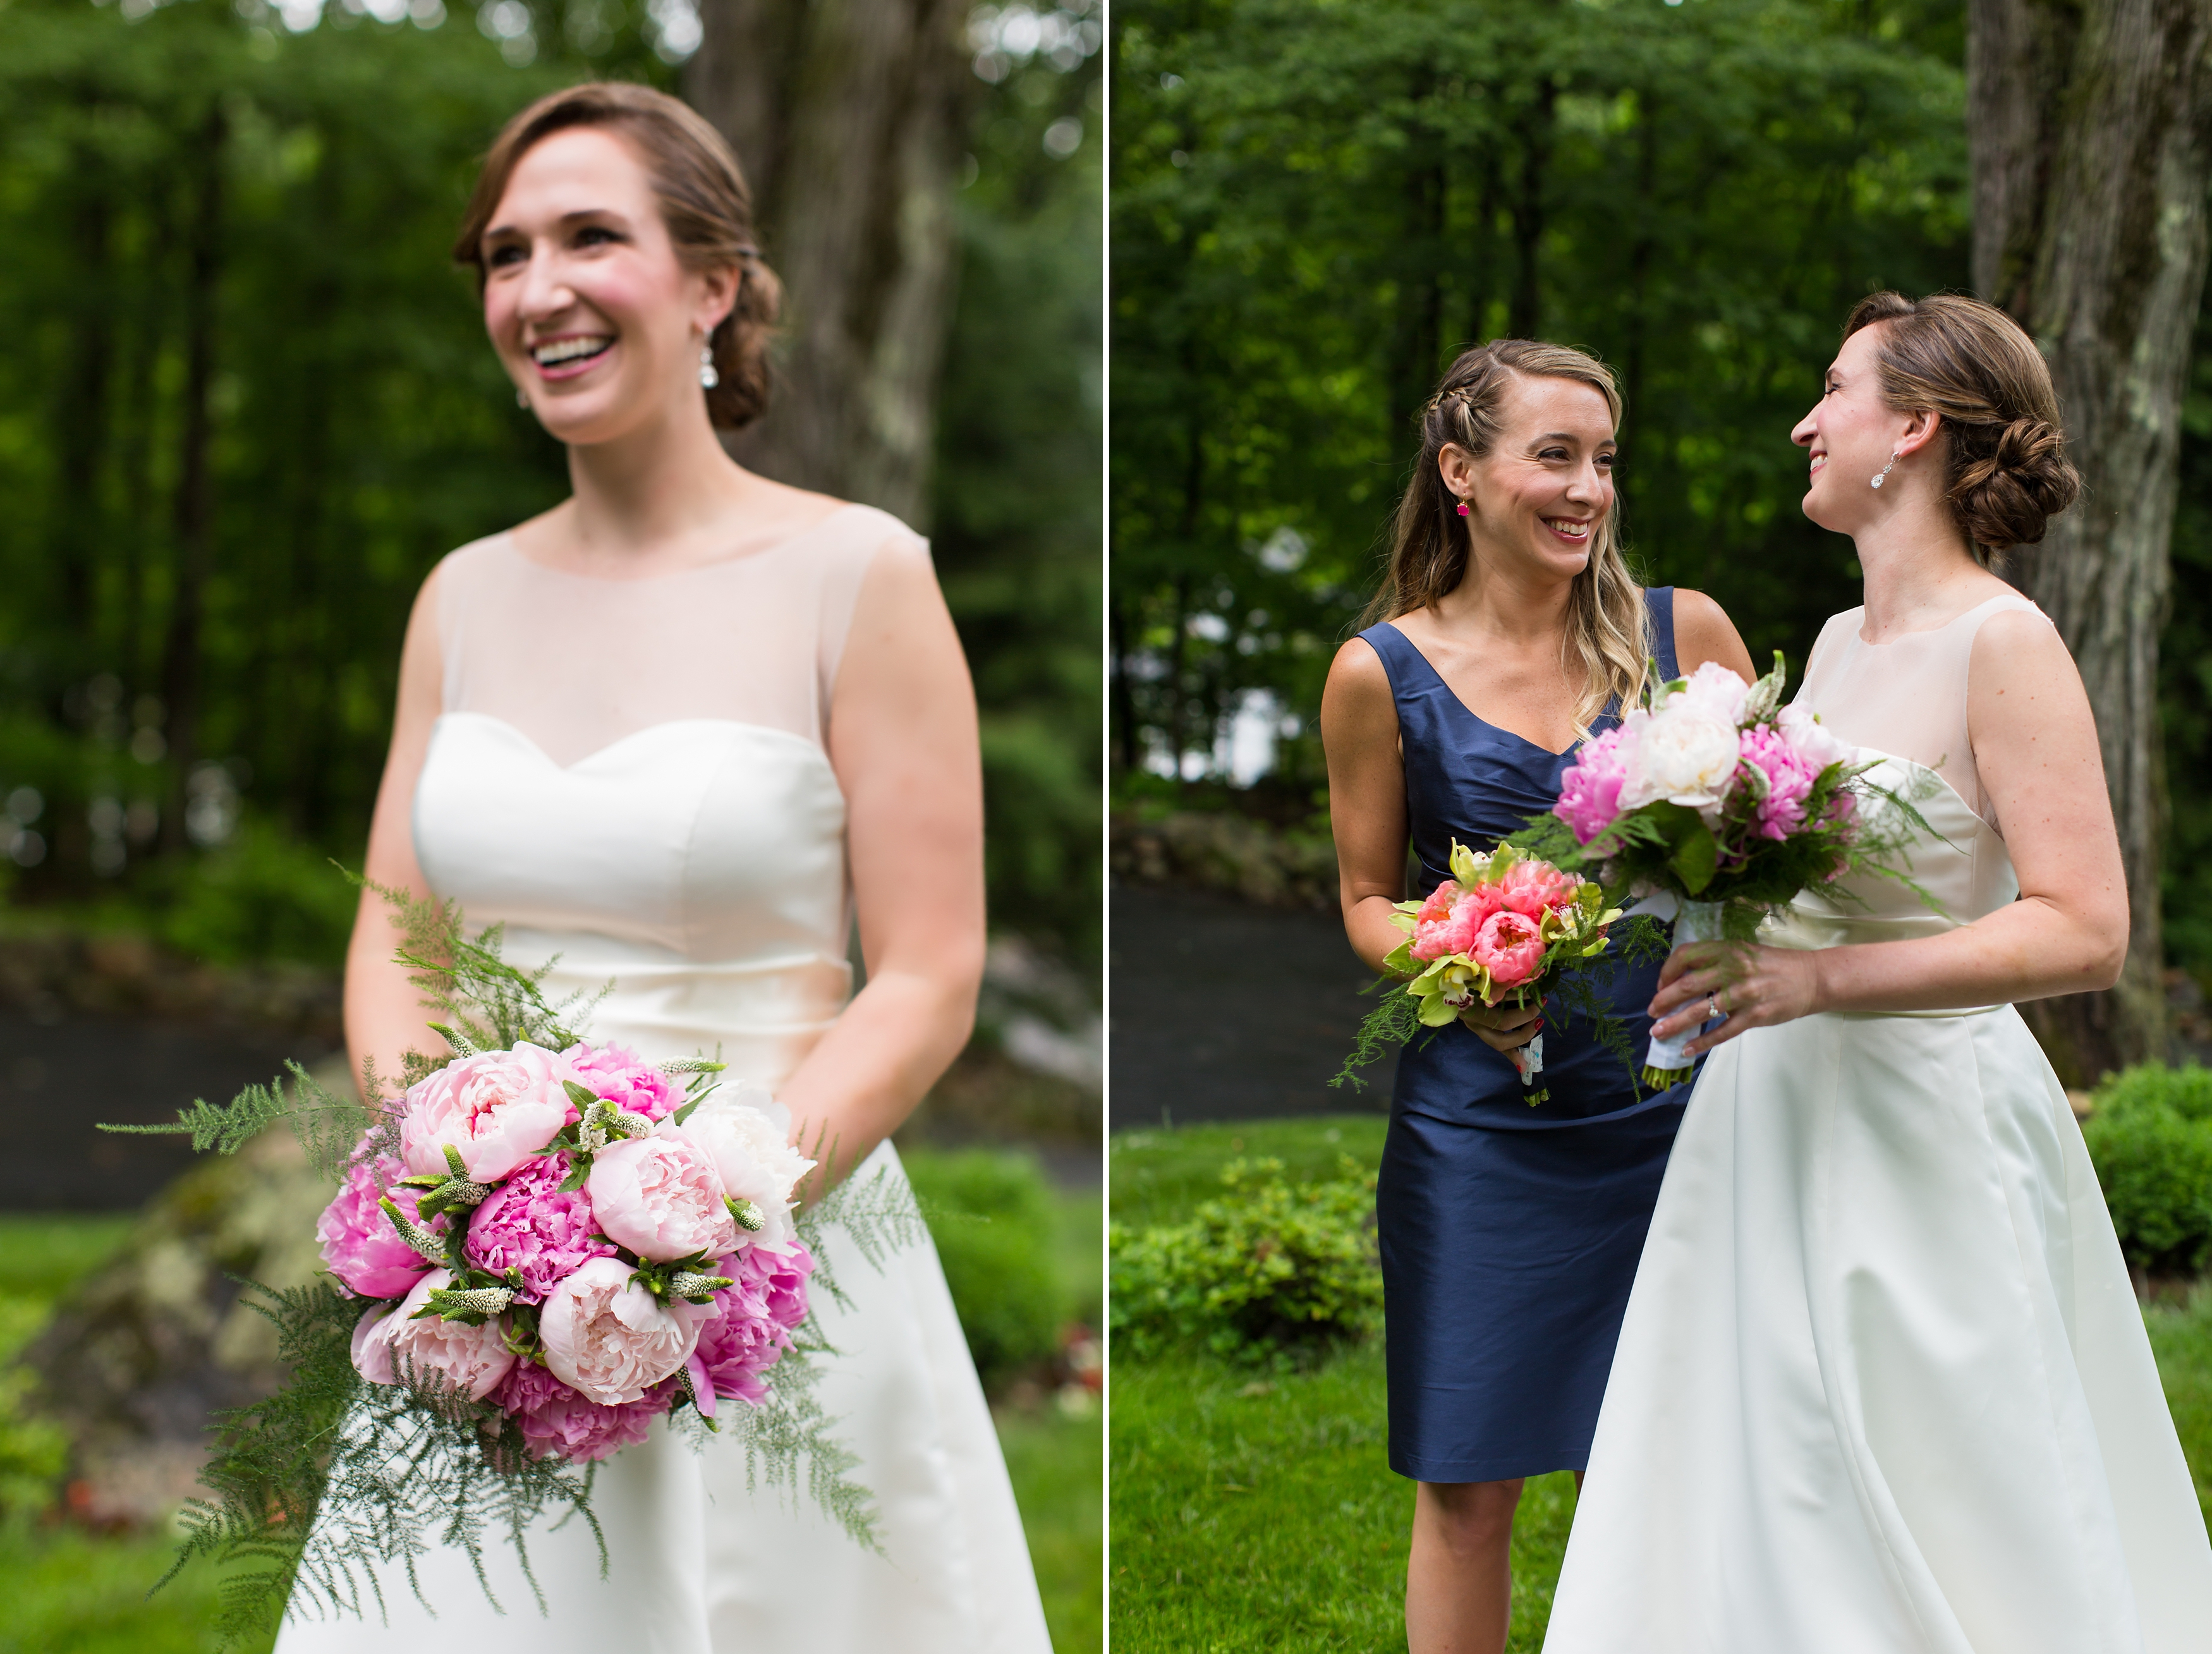 65Allegra_Anderson_CT_Wedding_Photographer_Stamford_Sterling_Farms_Golf_Club_2016